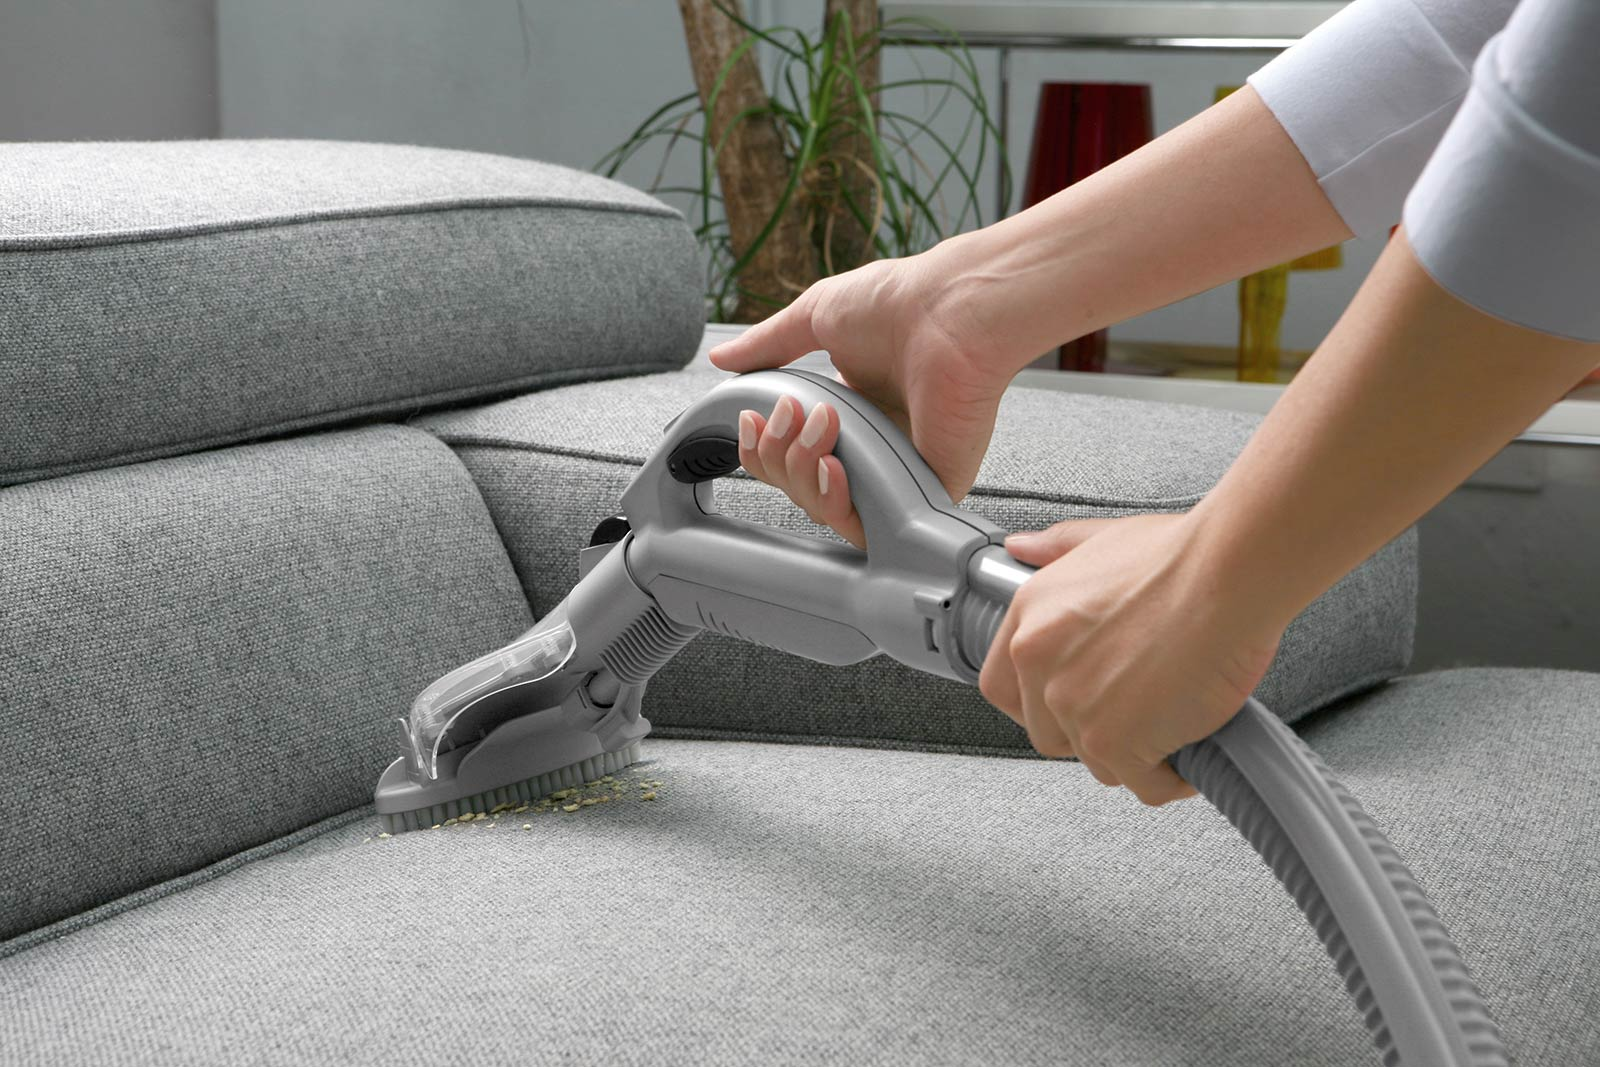 Image Credit: https://www.tlhindia.in/blog/cleaning-solutions-for-sofa-couch/